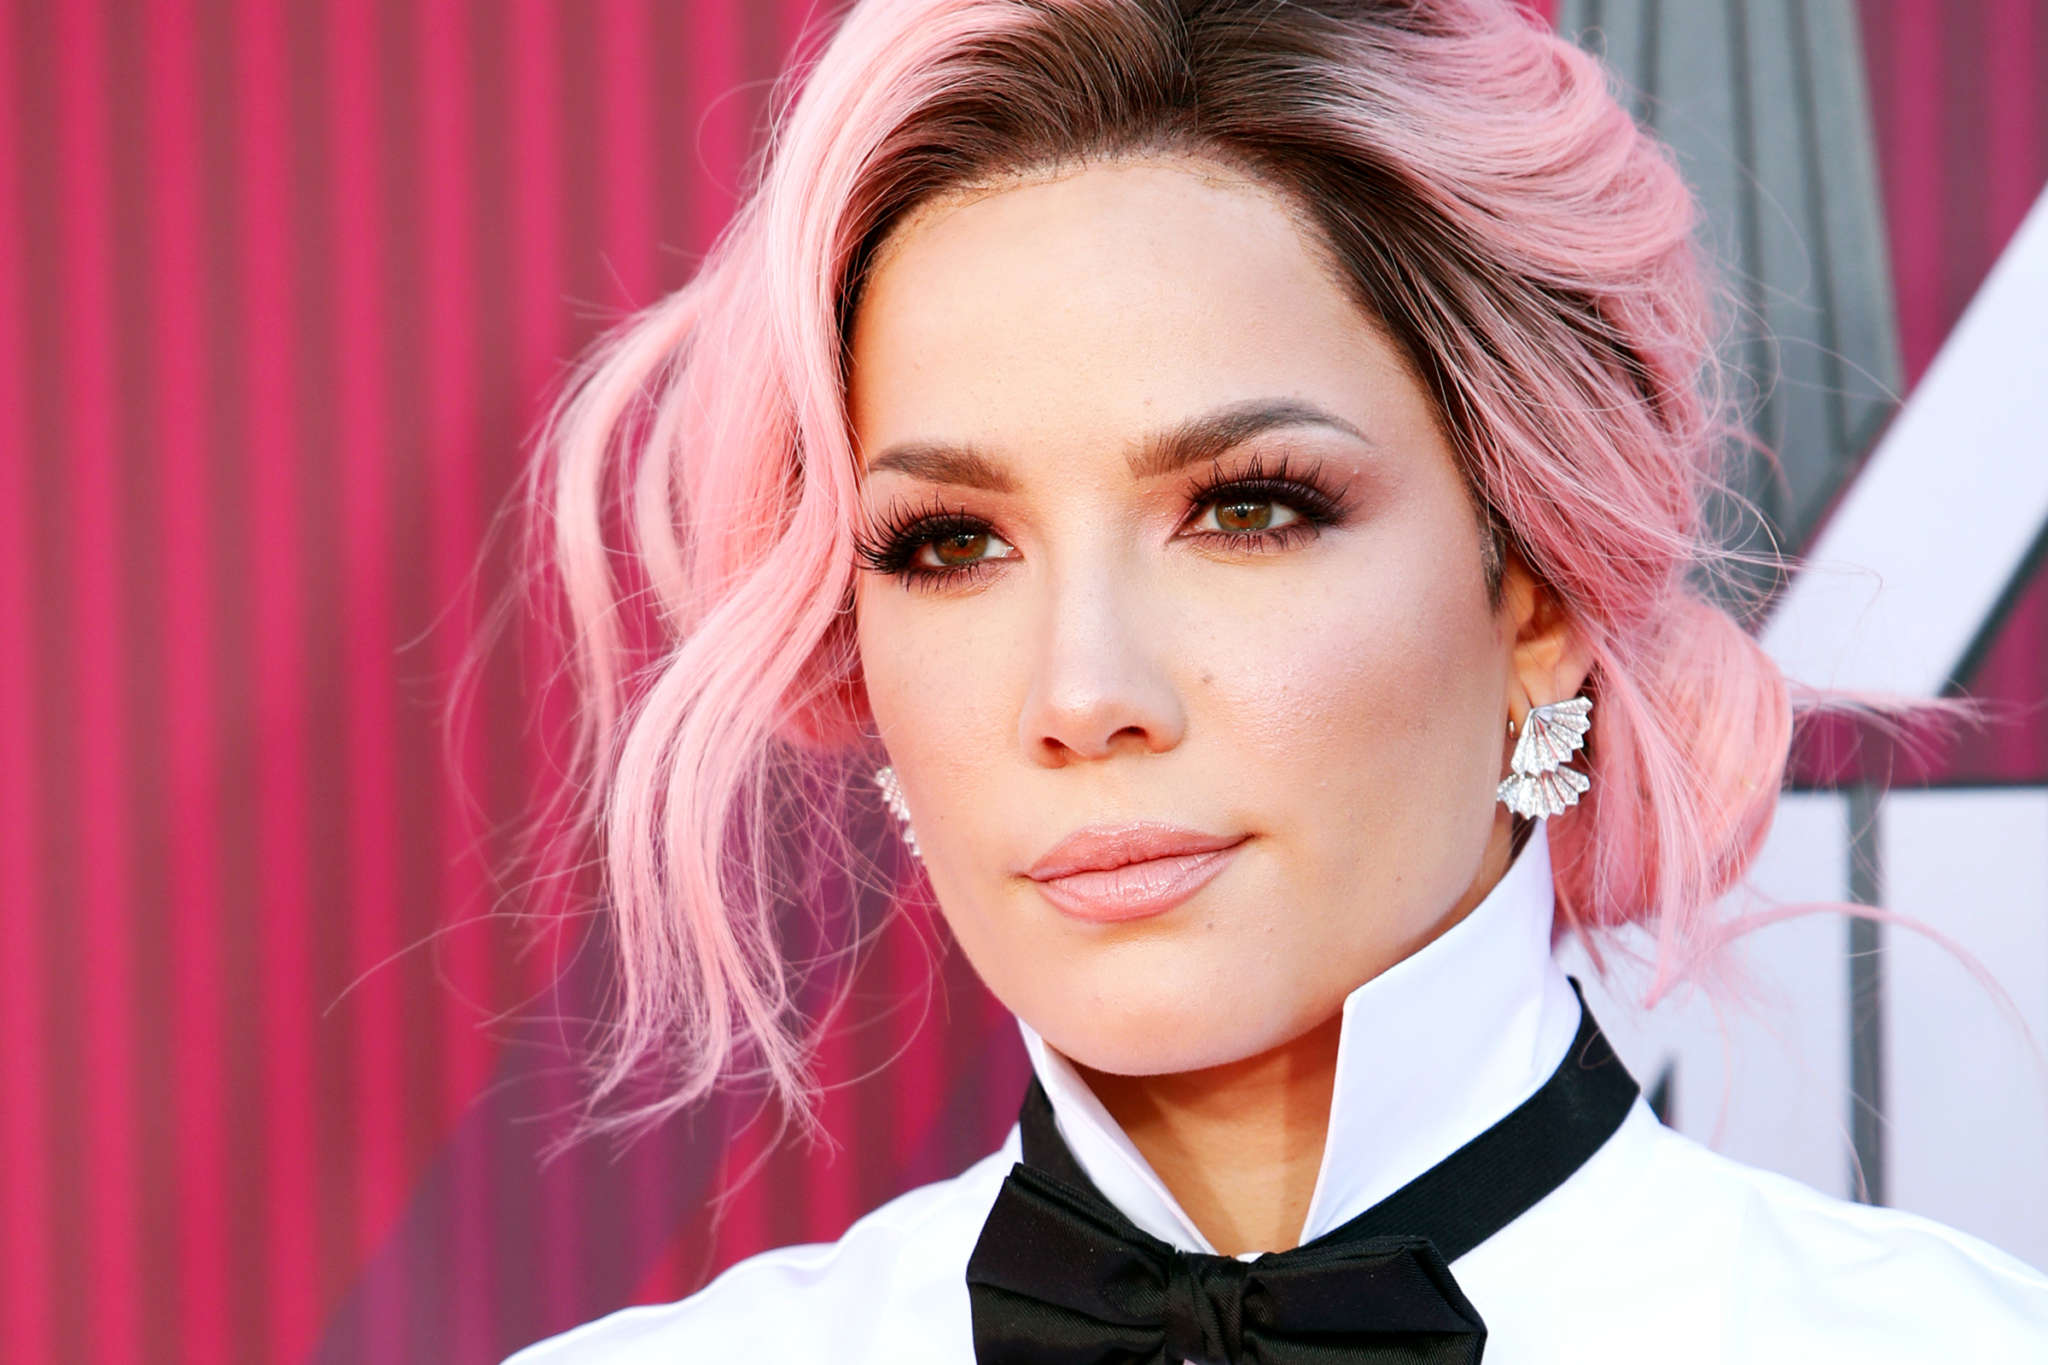 Halsey Slams Followers Who Ask To Take Pics With Her Whereas Protesting – 'Don't Even Ask!'